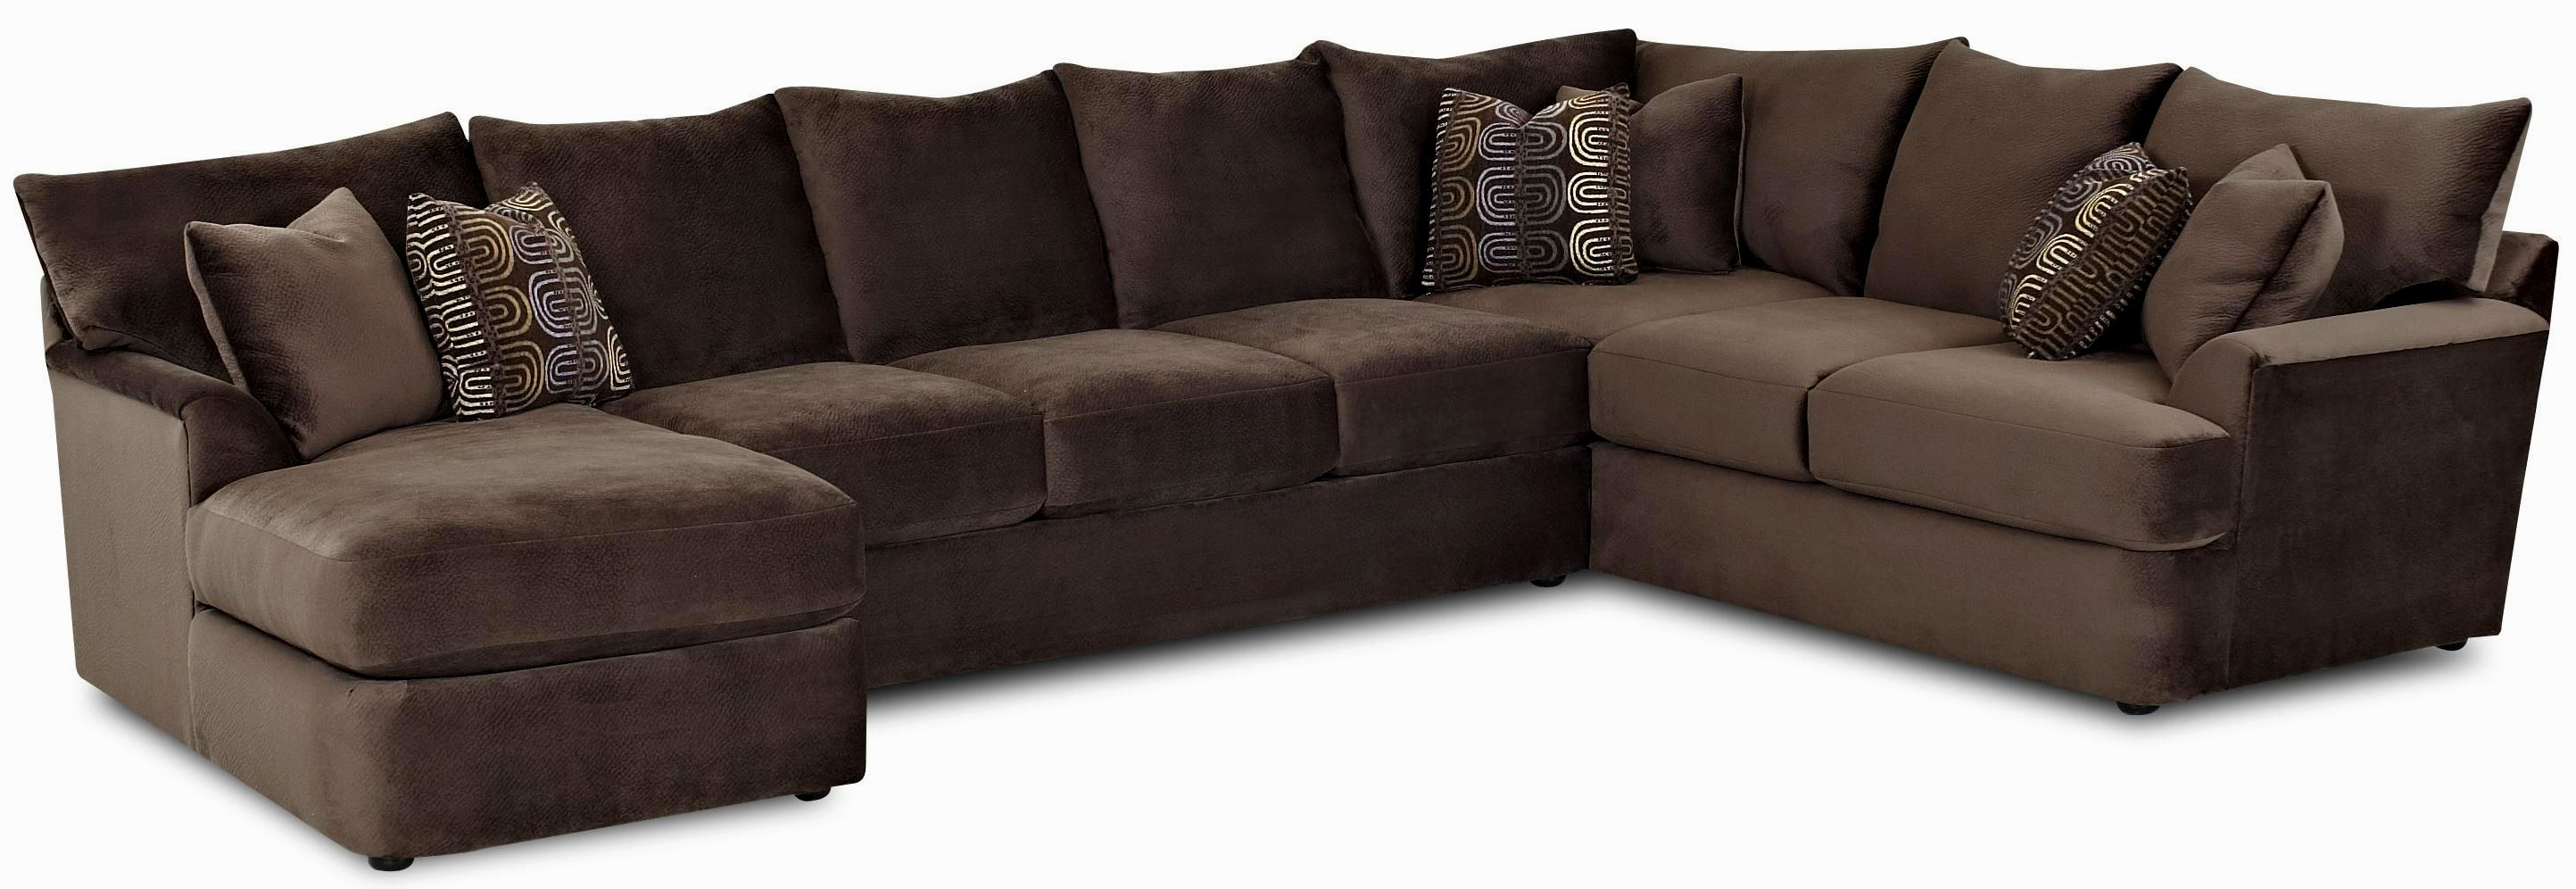 amazing recliner sectional sofa design-Wonderful Recliner Sectional sofa Plan